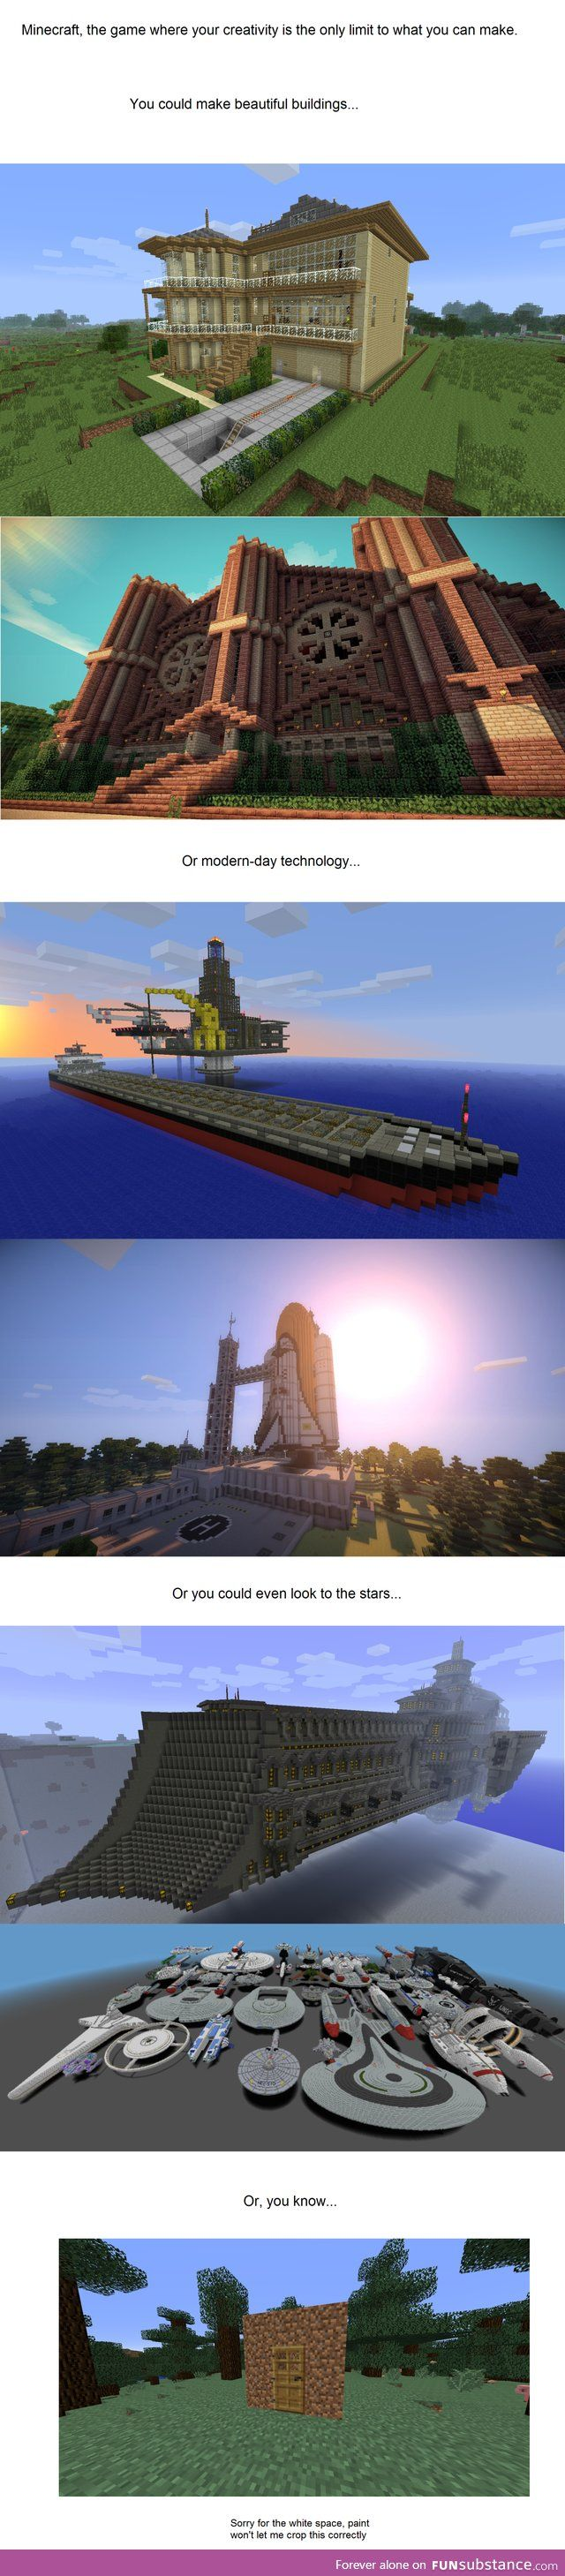 I know a foolproof way to make a bad house in minecraft look nice: Step one- build it high up, floating, on a cliff, on stilts, I don't care. Step two- section off space for bedrooms, storage rooms, a kitchen, a useless bathroom, whatever. Step three- add as many decorations as you can. If the floor is made of dirt, plant flowers. Hang pictures on the walls, add paintings, flowerpots, banners, tie iron golems to the fence. Ta-da! Enjoy your lovely house!